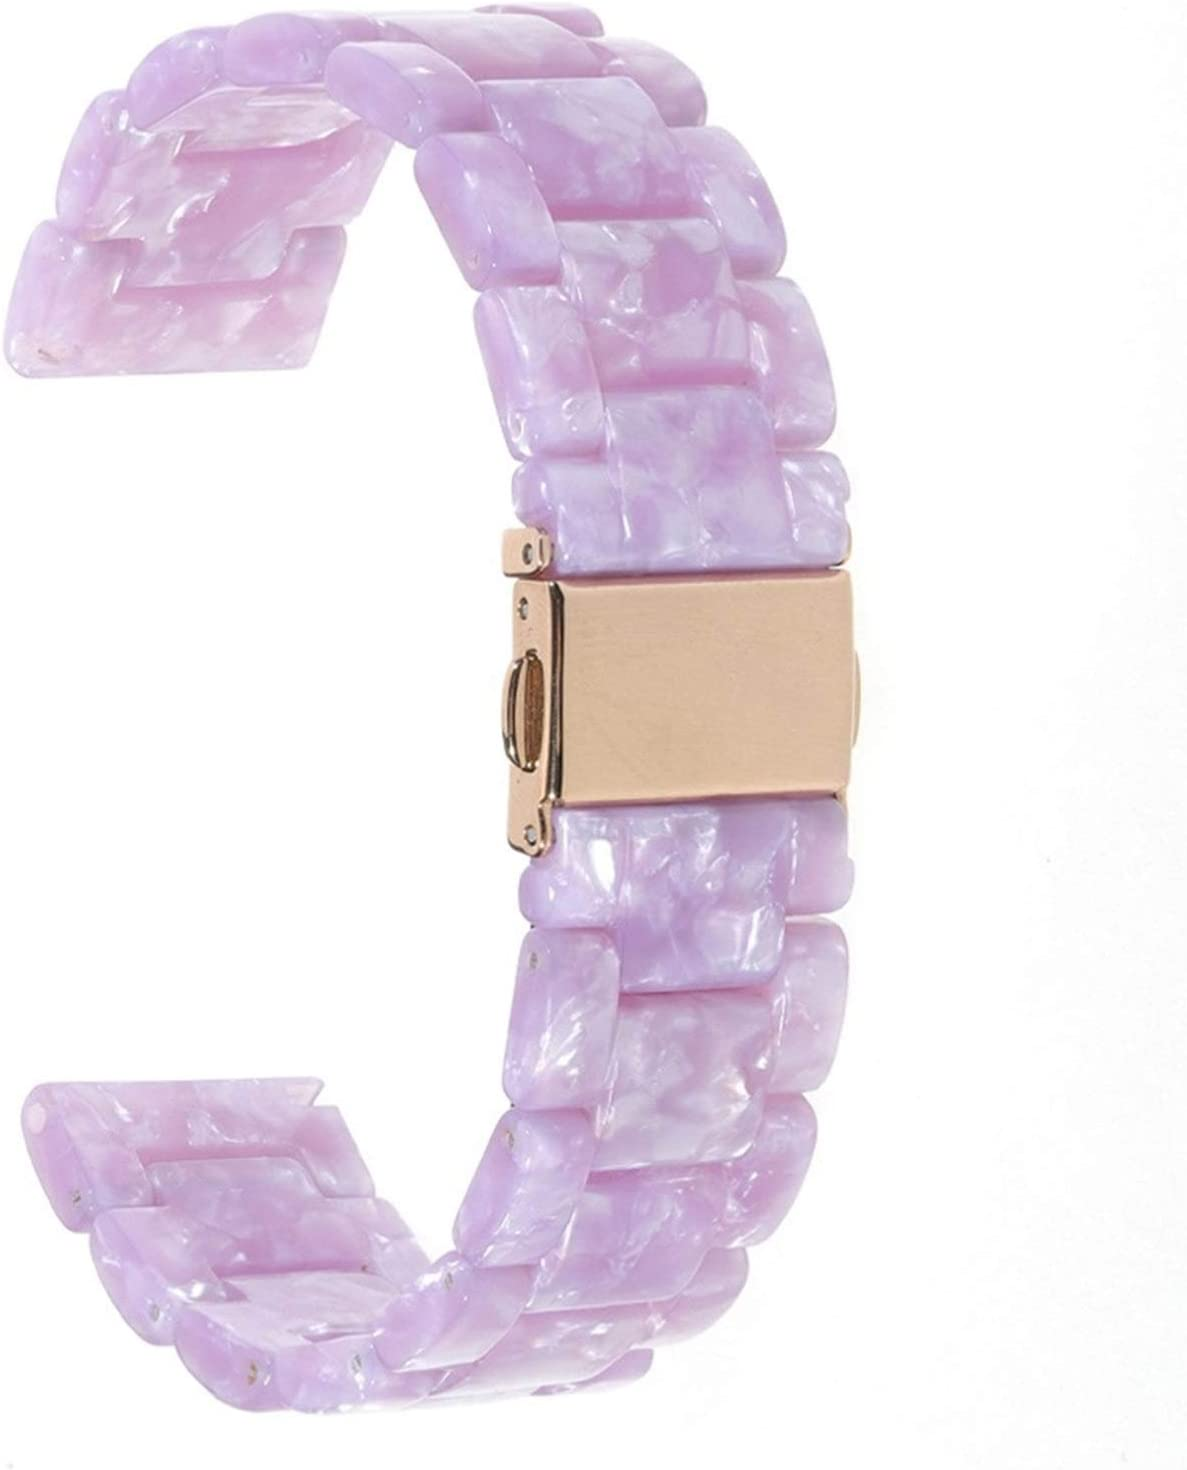 DLCYMY Fashion Resin Wrist Strap Rare for Watch Band Sales of SALE items from new works 4 6 Series SE 5